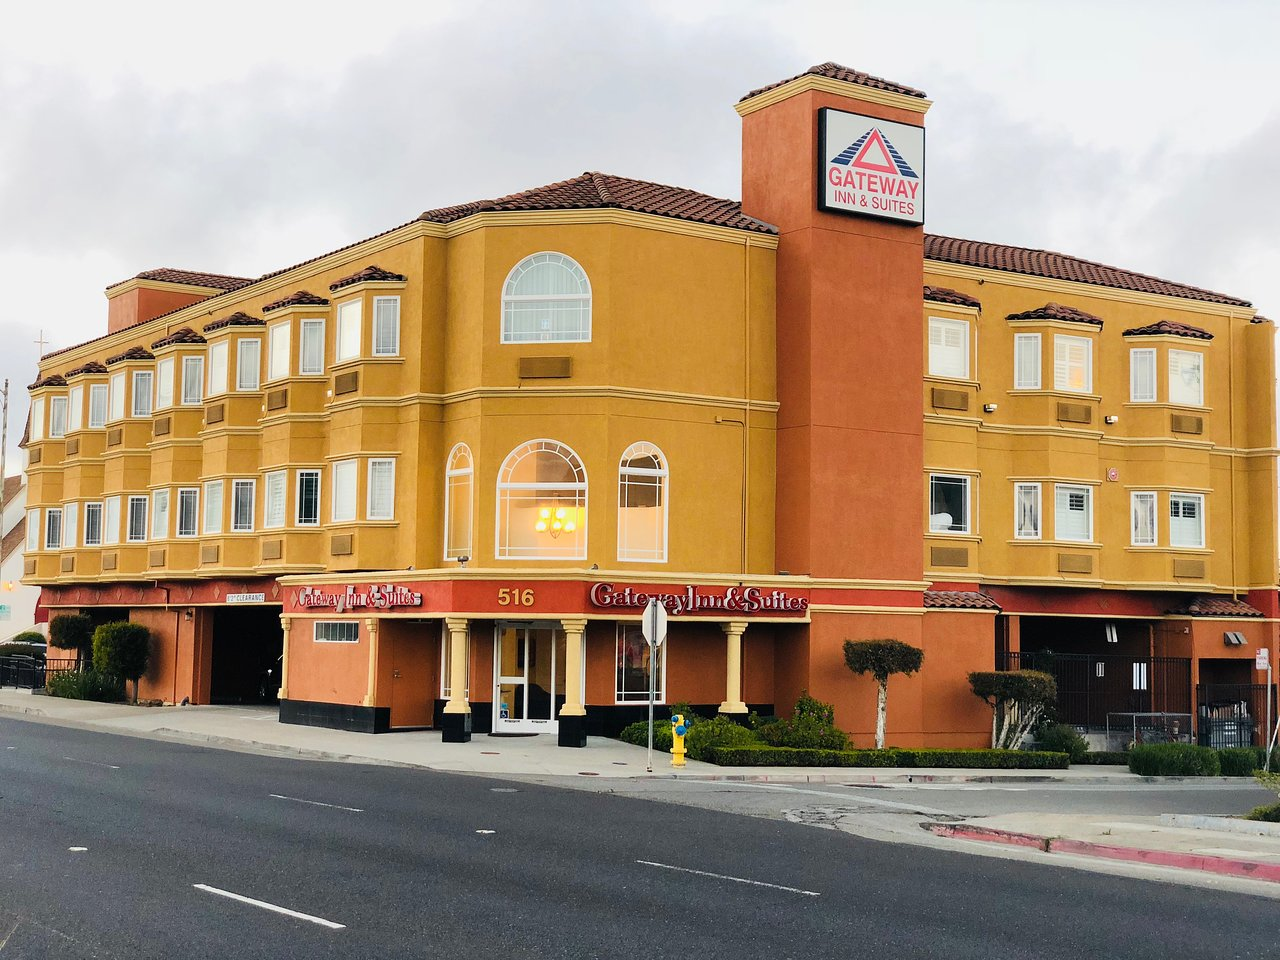 gateway inn and suites hotel 99 1 2 6 updated 2019 prices rh tripadvisor com